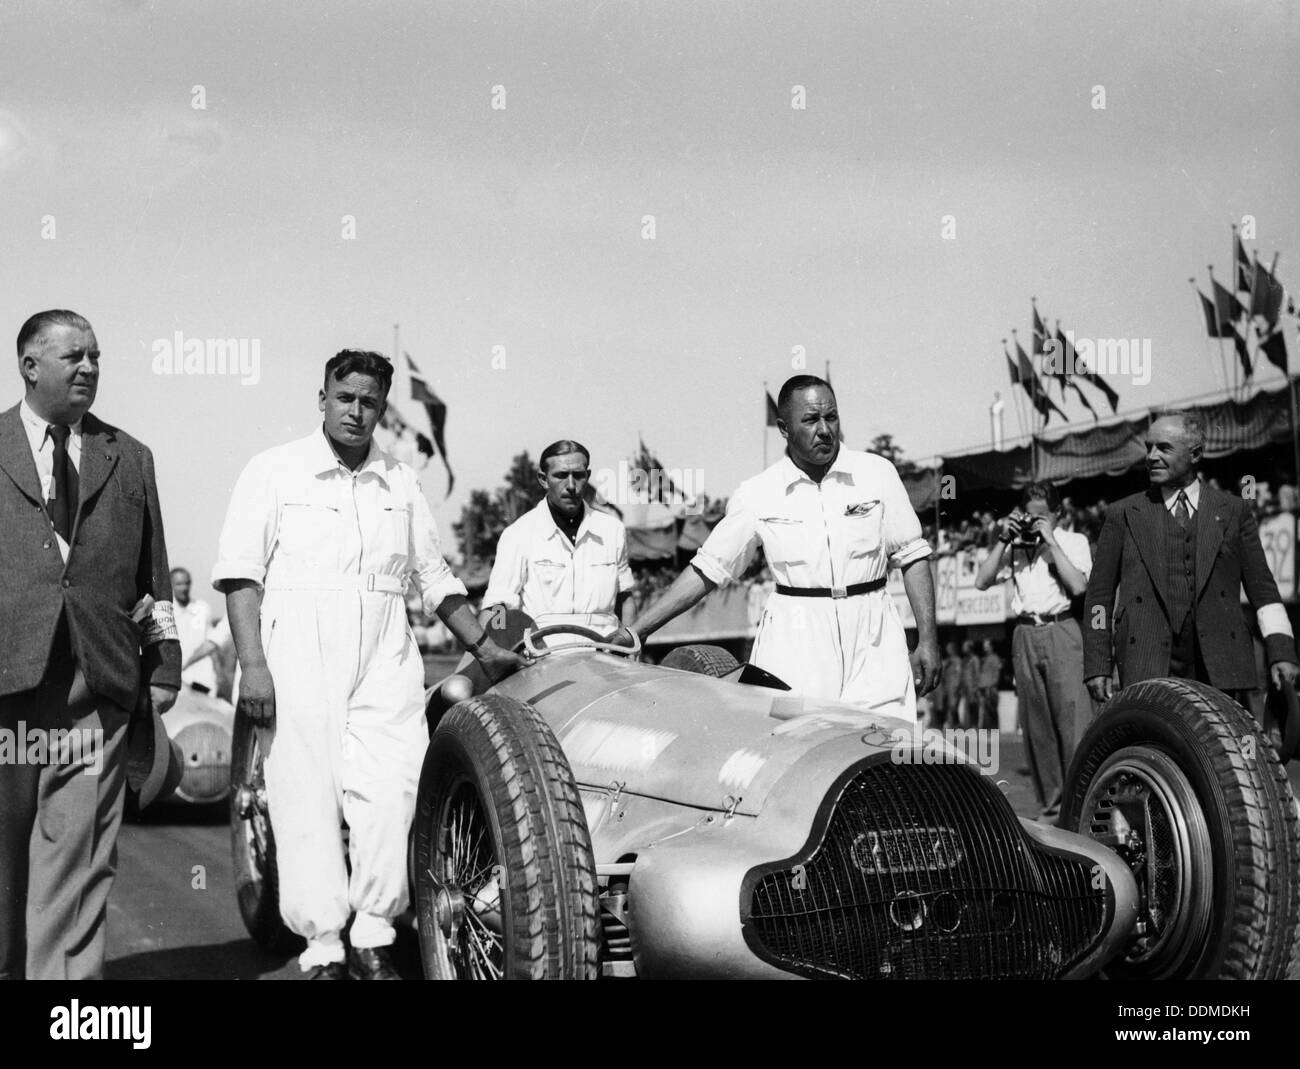 Alfred Neubauer with Mercedes car at the Start of the Italian Grand Prix, Monza, 1938. - Stock Image